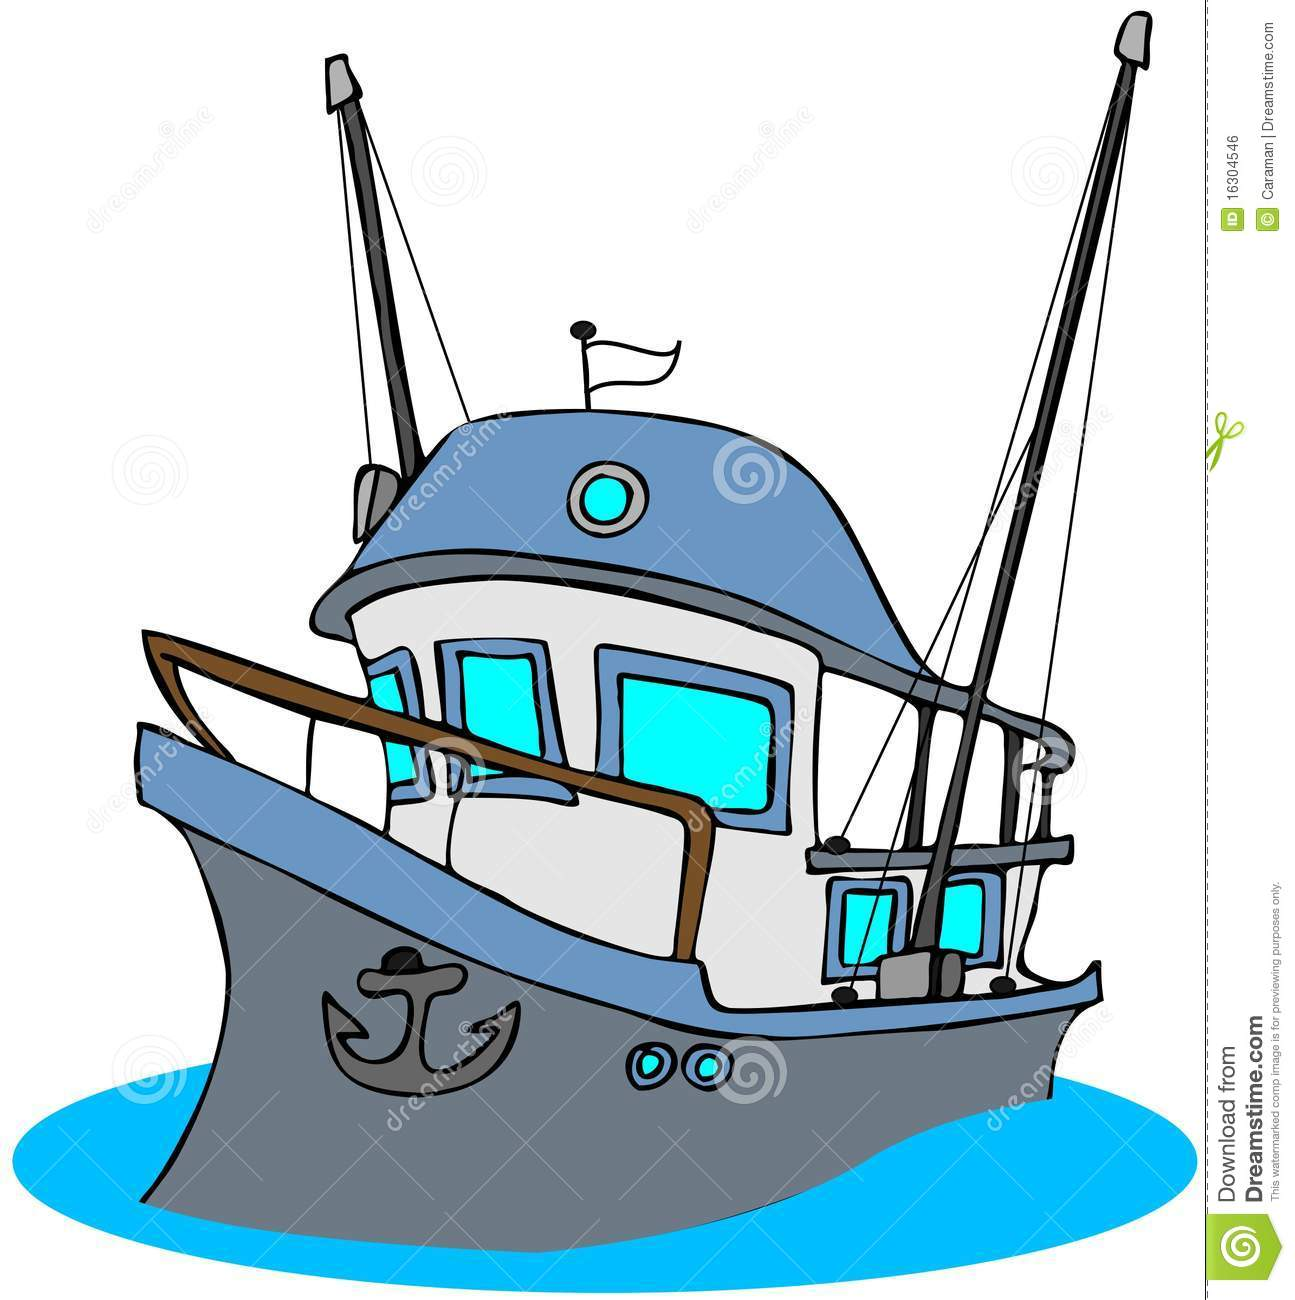 Fisherman clipart little boy  Boat Clipart Boat Clipart